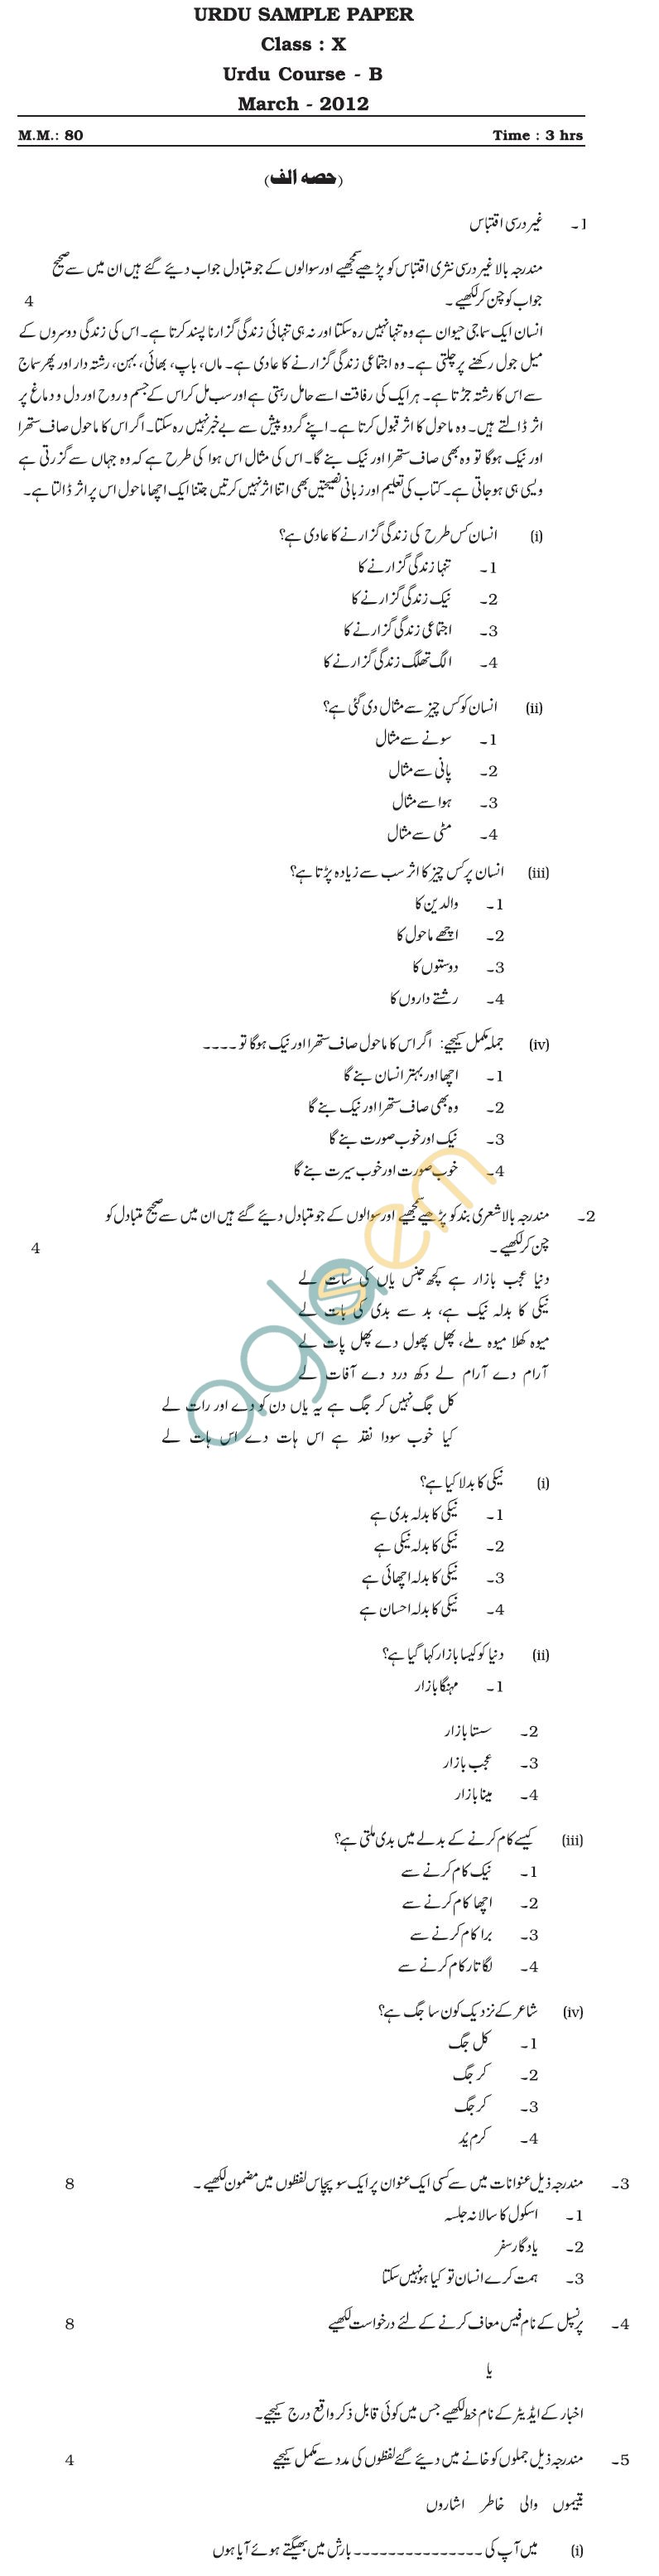 CBSE Class X Sample Papers 2013 (Second Term) Urdu Course B